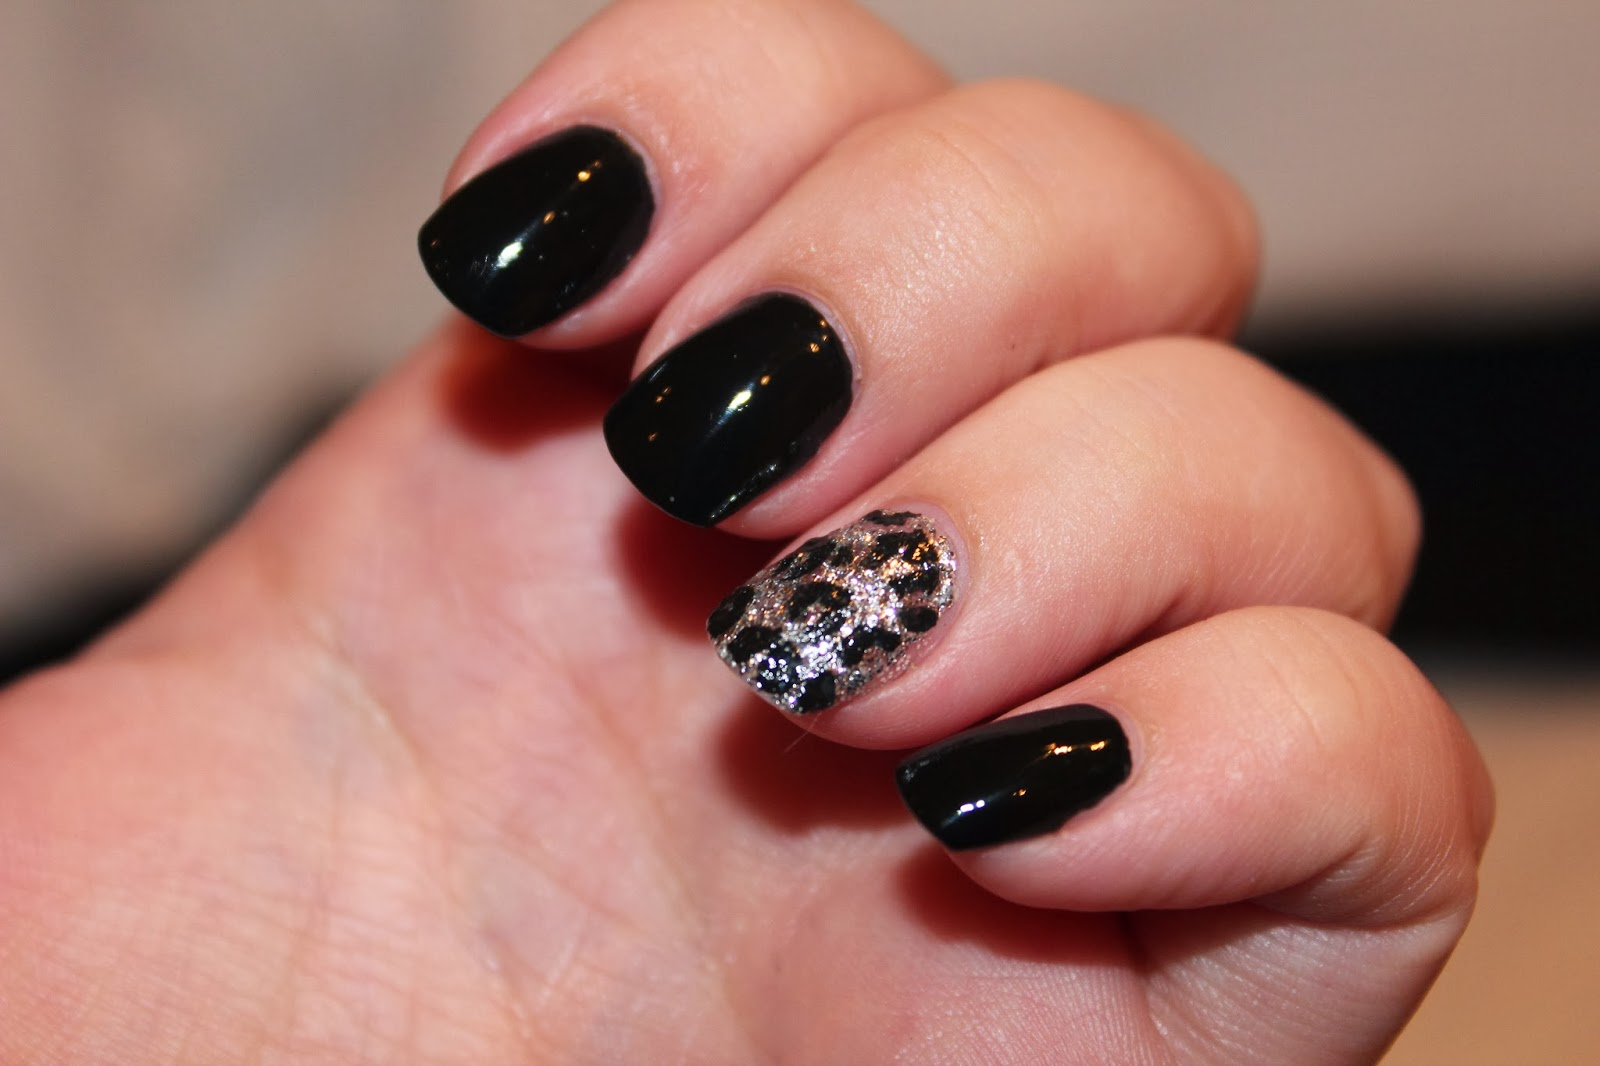 Obsessed by beauty notw jade angel at czaro salon london for Nail salon oxford